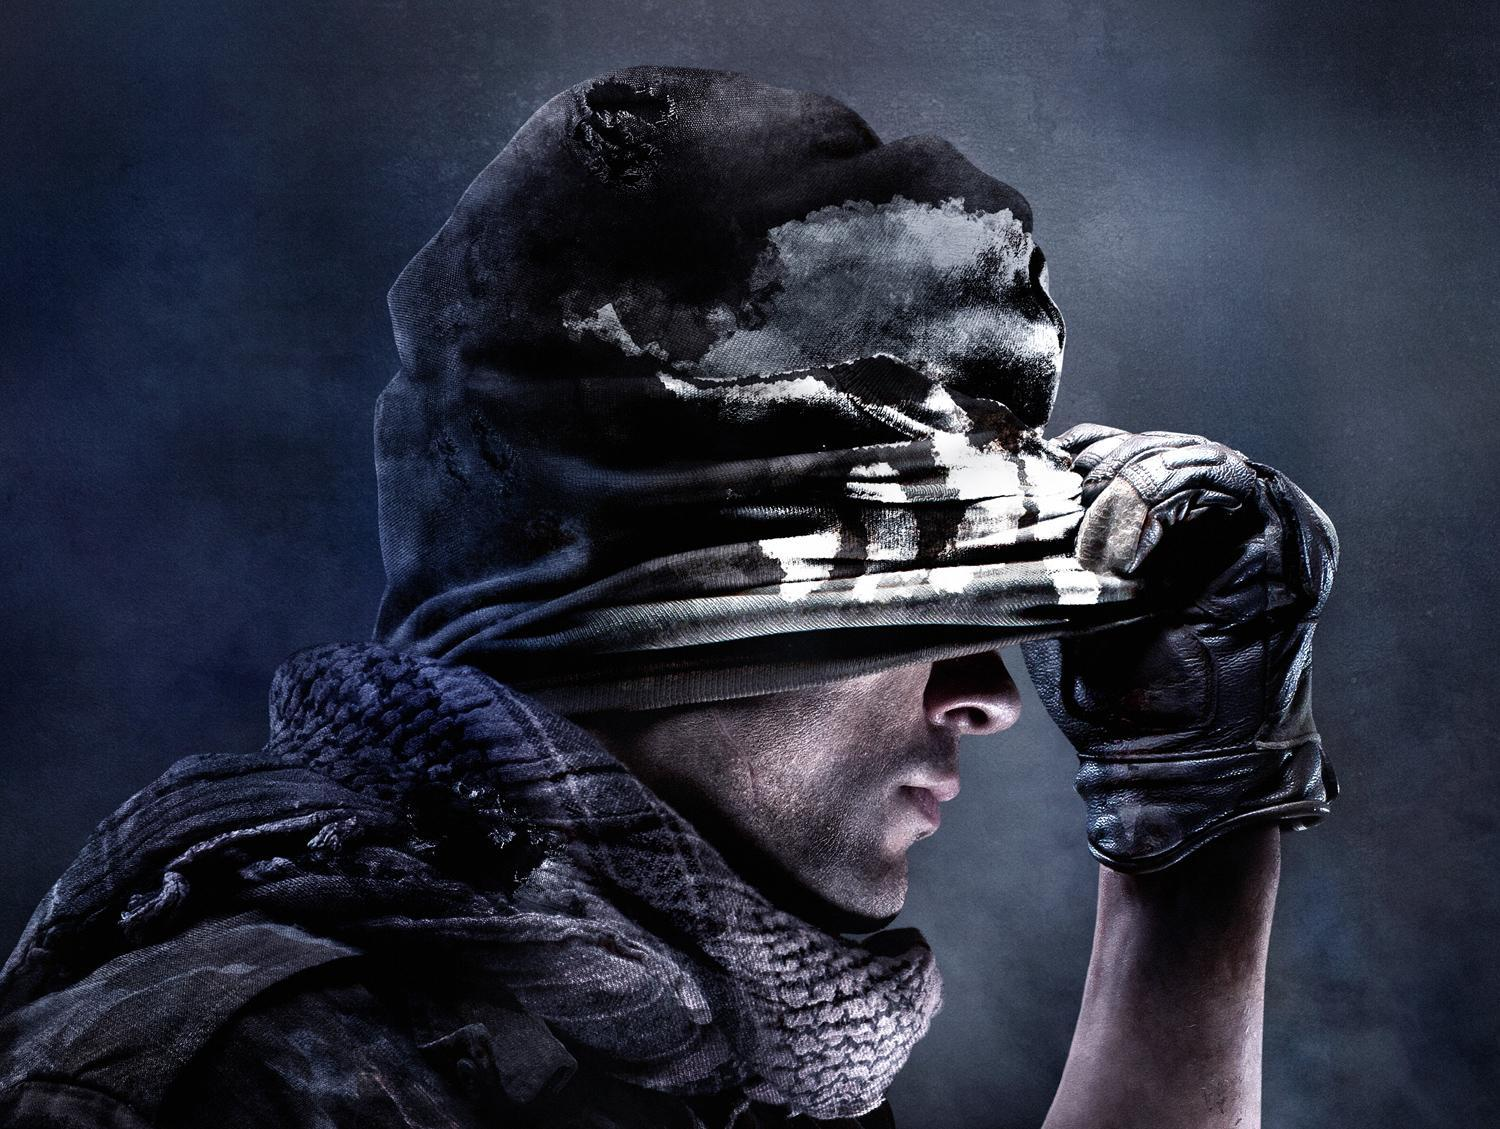 16934 download wallpaper Men, Games, People, Call Of Duty (Cod) screensavers and pictures for free